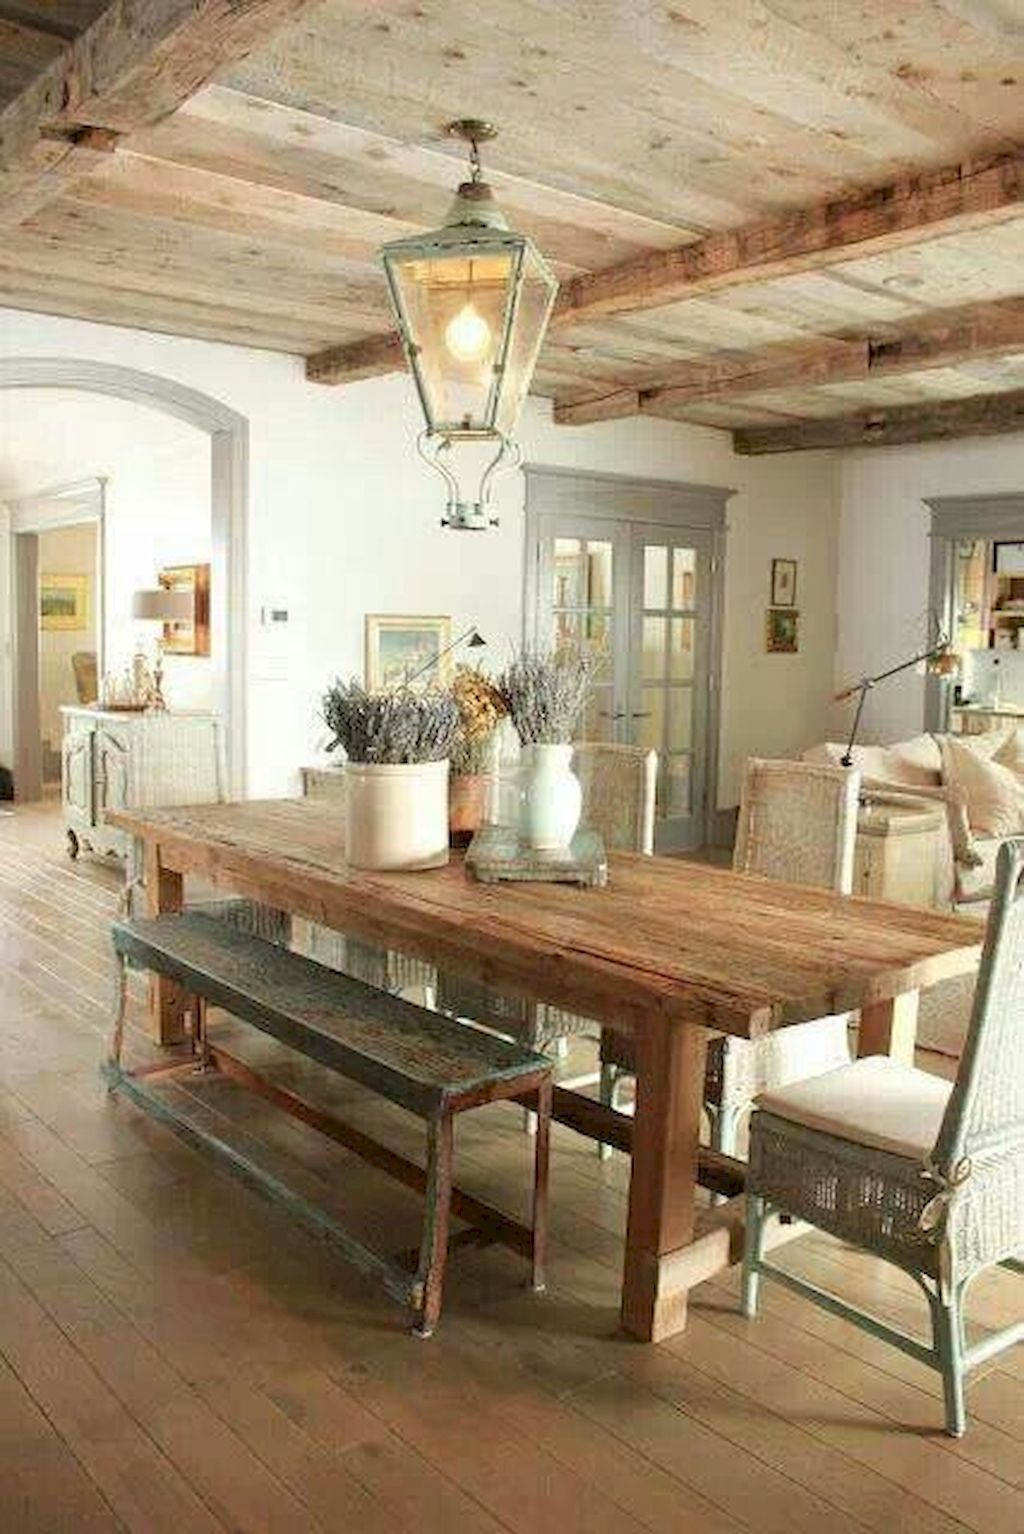 Fancy French Country Dining Room Table Decor Ideas (33)